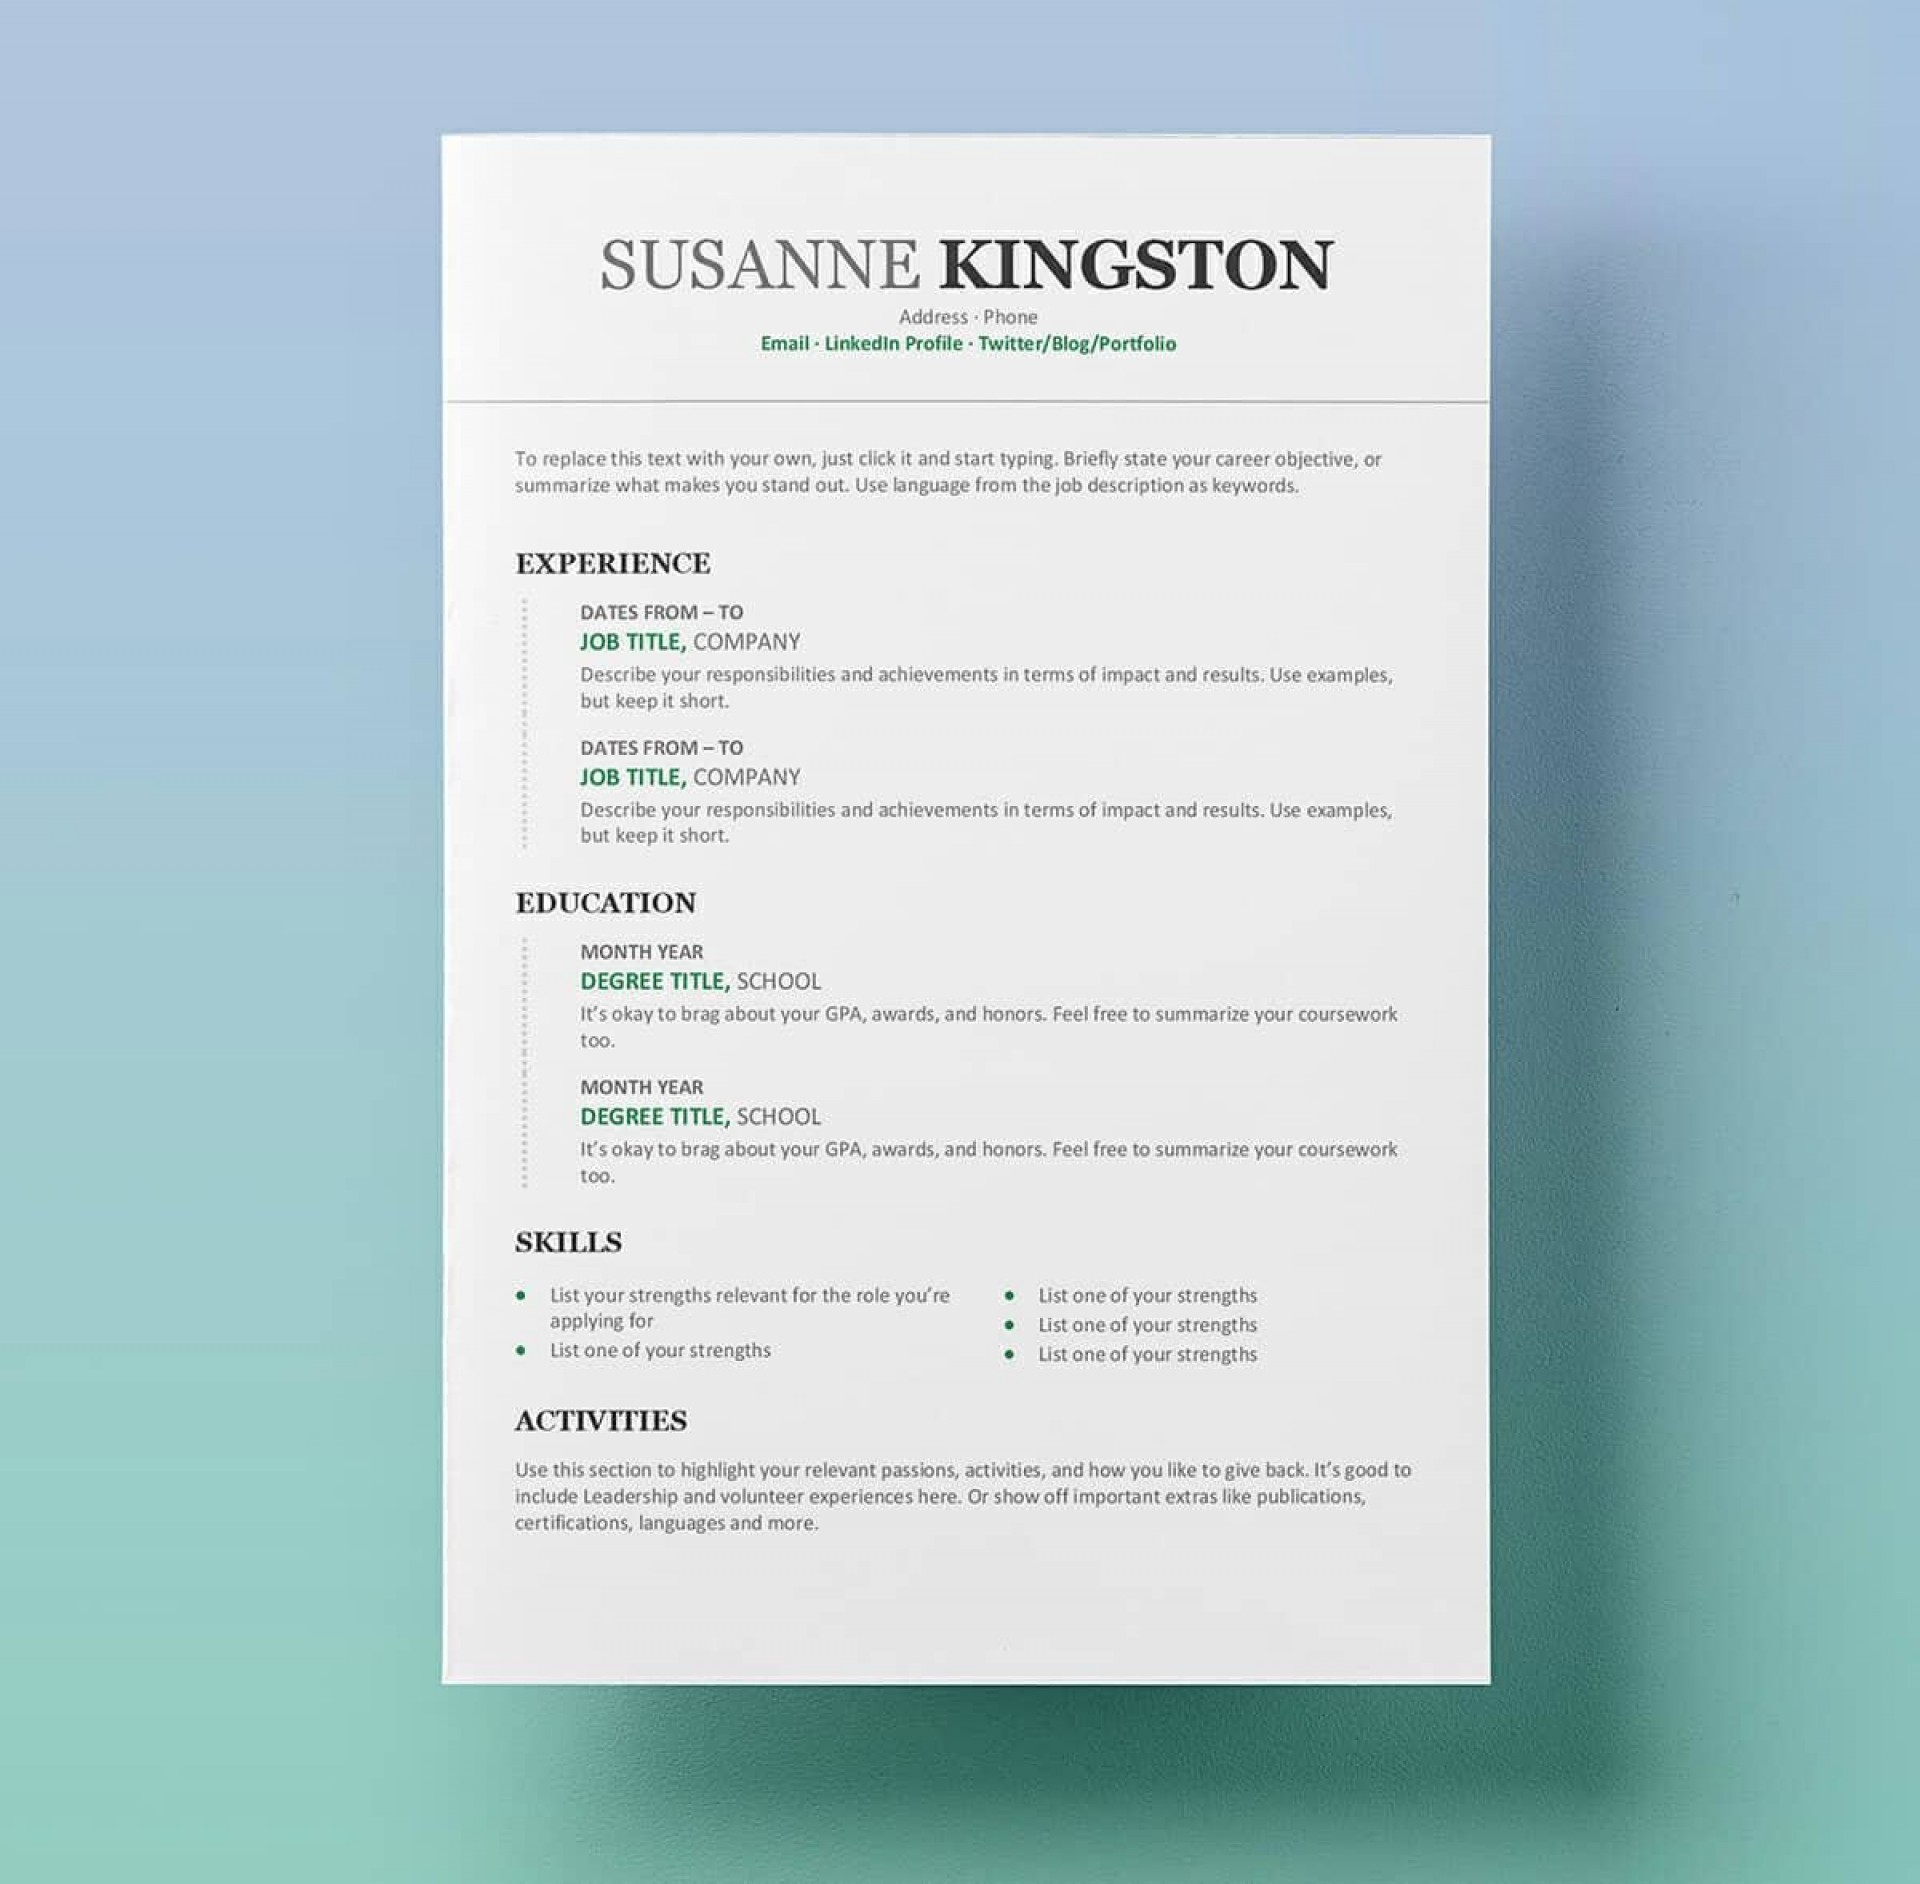 009 Stupendou Word Resume Template Free Concept  Fresher Format Download 2020 M1920